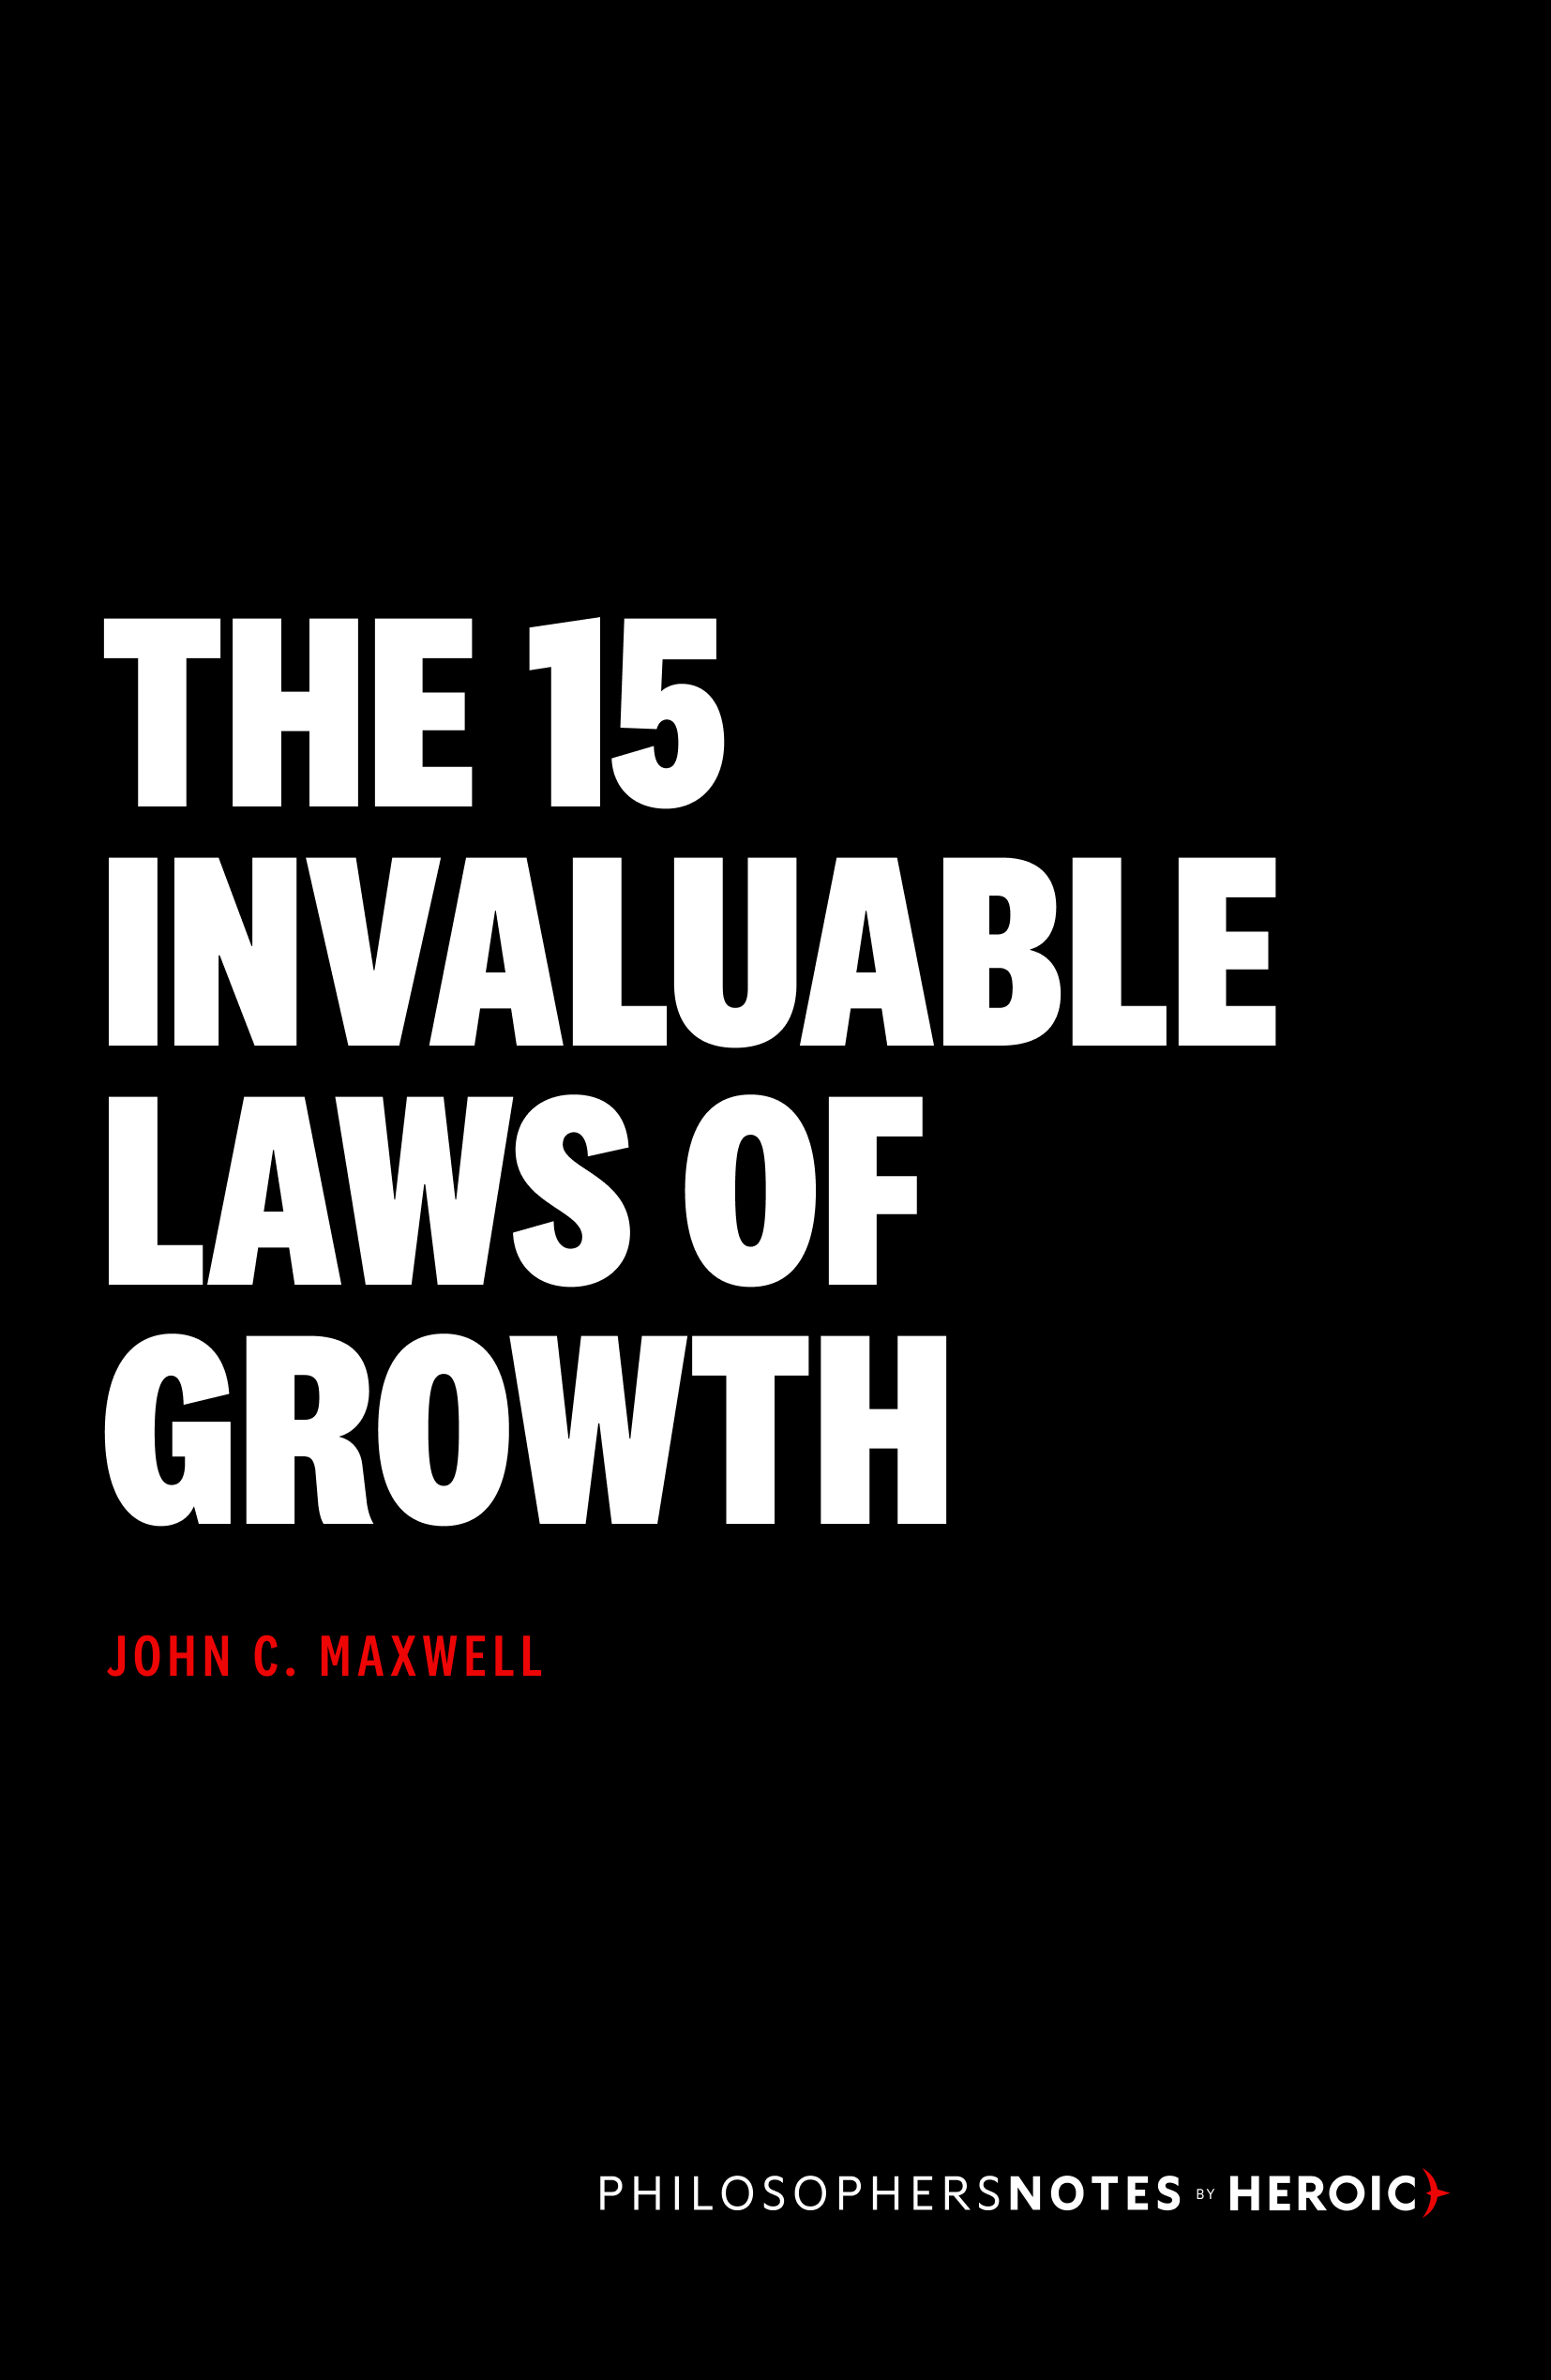 the 15 invaluable laws of growth participant guide pdf